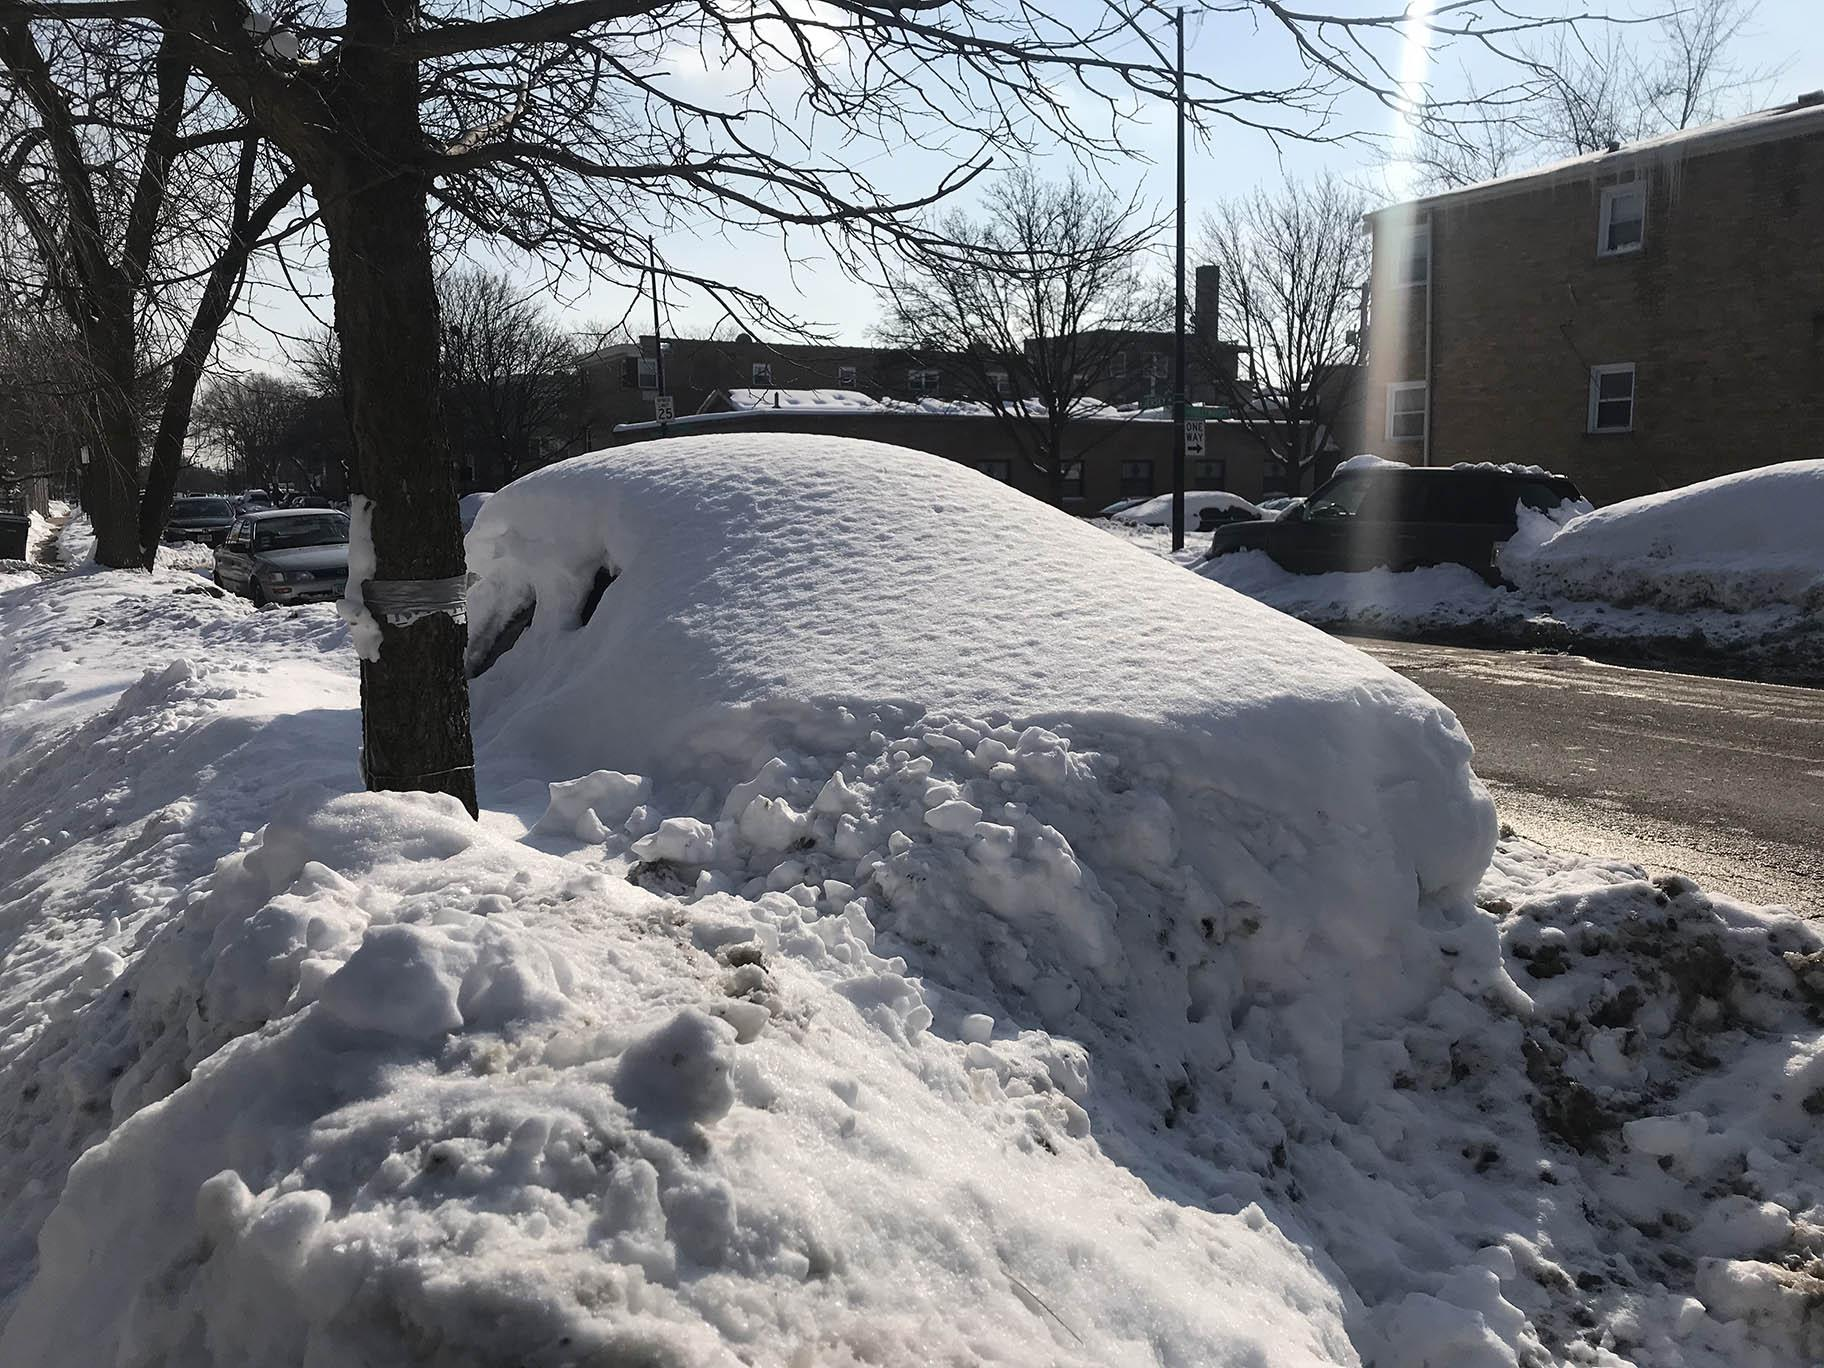 A car parked on a street in Chicago is buried by snow from recent storms. Sunshine and warmer temperatures on Saturday, Feb. 20, 2021 melted some snow, but there is still plenty to shovel. (WTTW News)